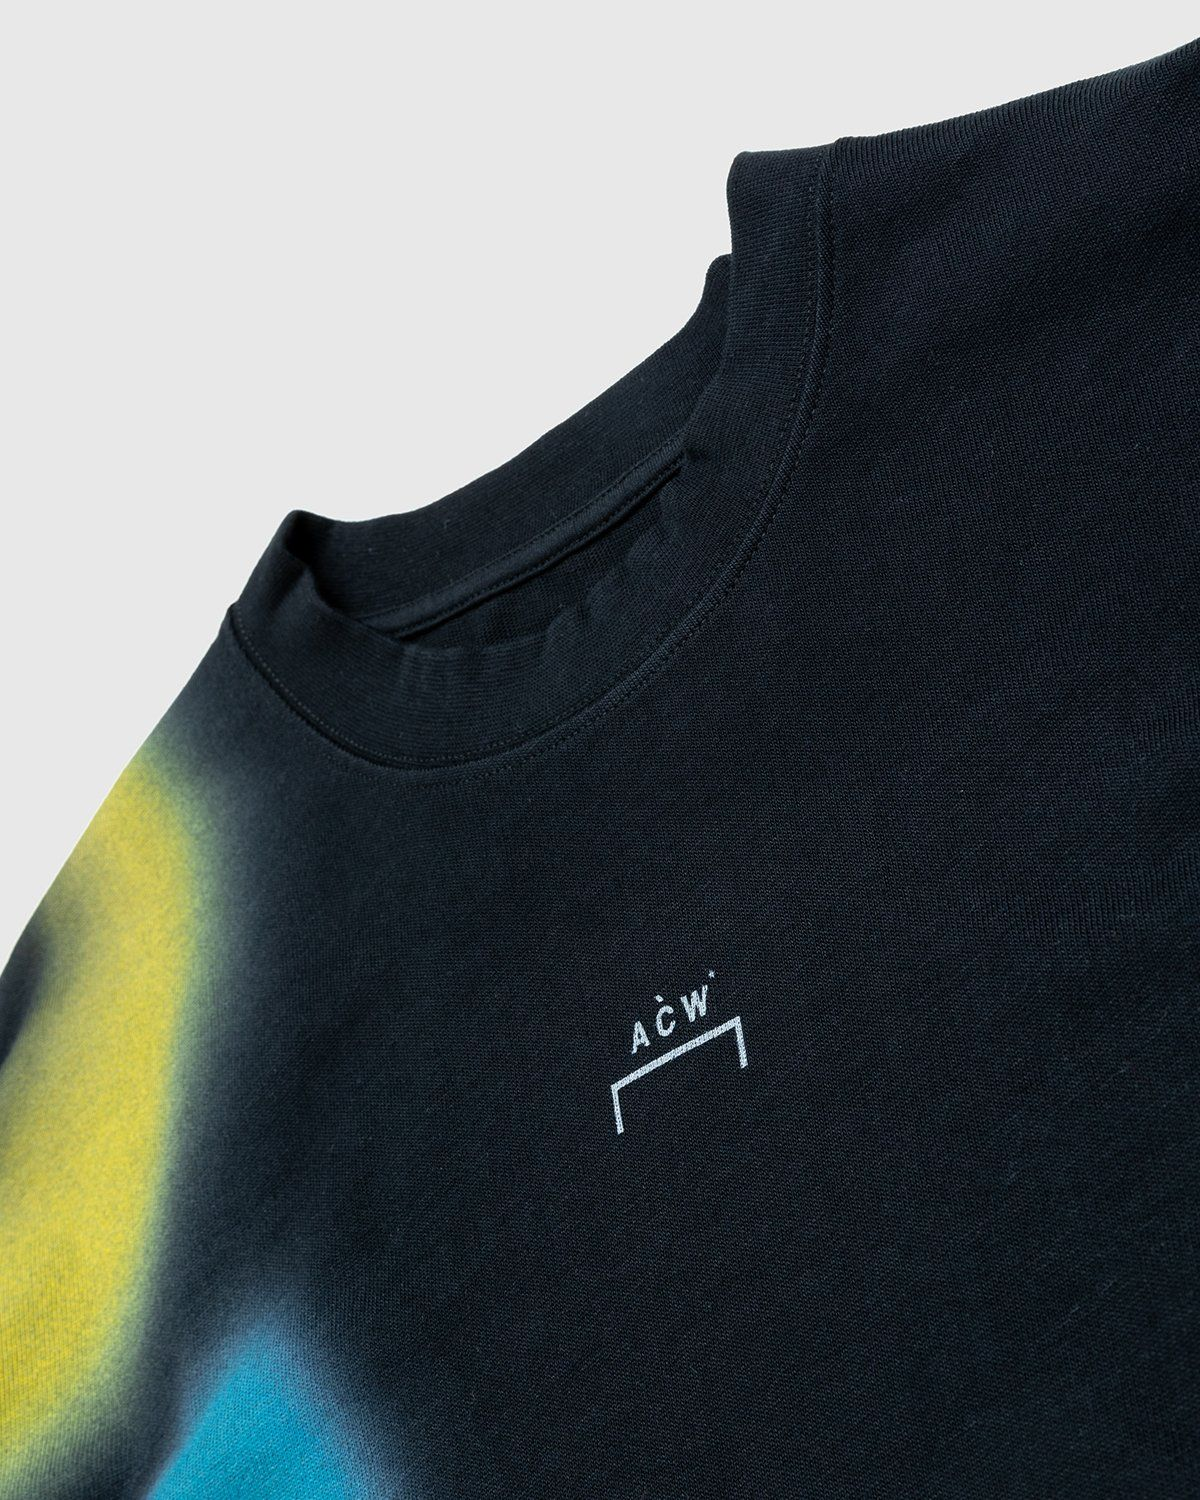 A-COLD-WALL* – Hypergraphic Longsleevee Black - Image 3